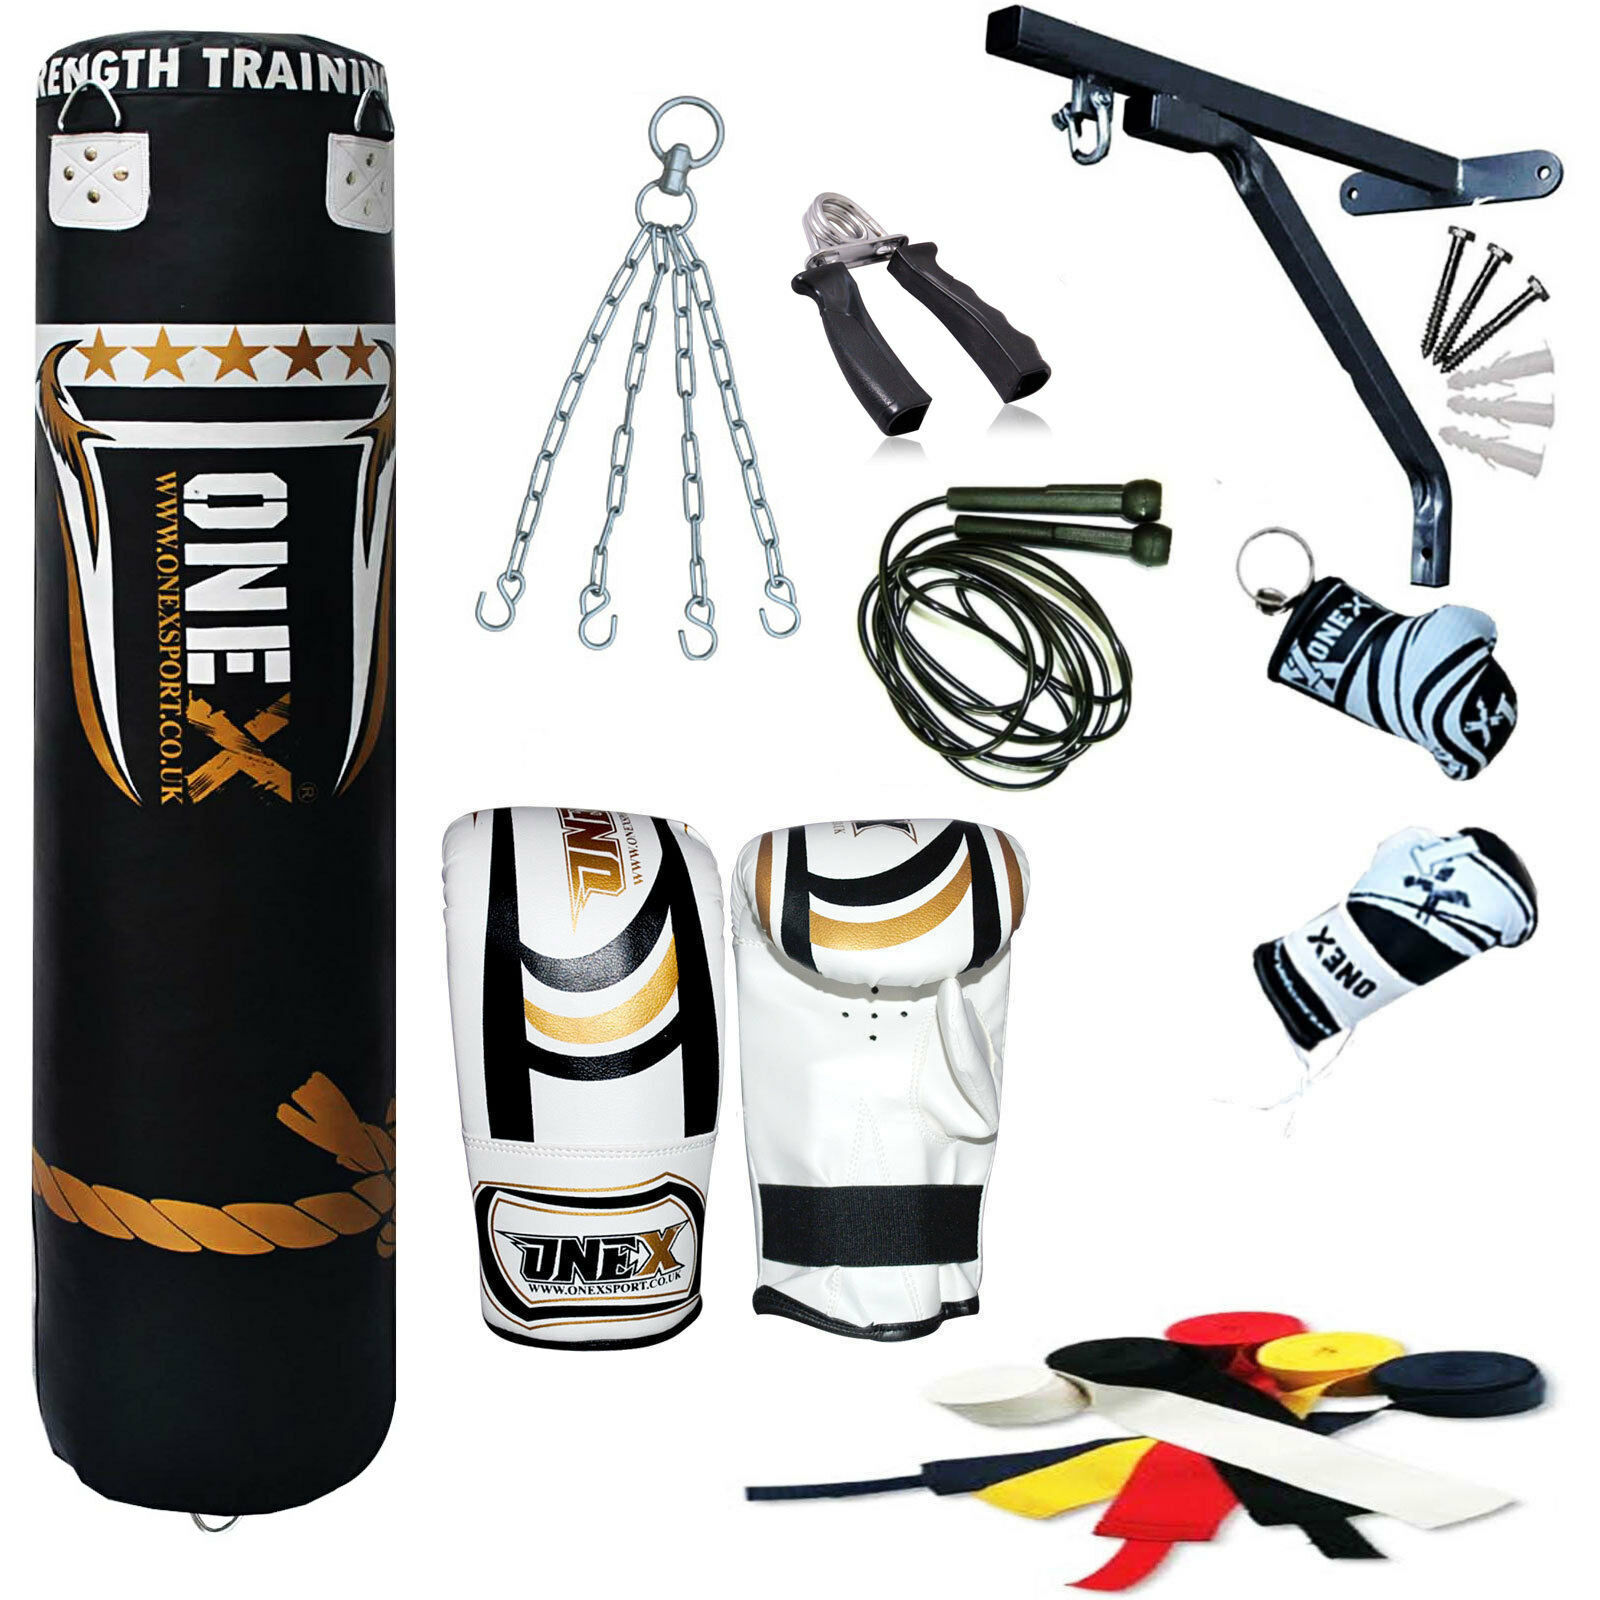 Onex Latest Filled 13 Piece 5ft heavy Filled Latest Boxing Punching Fitness Bag Set,Gloves c12a28